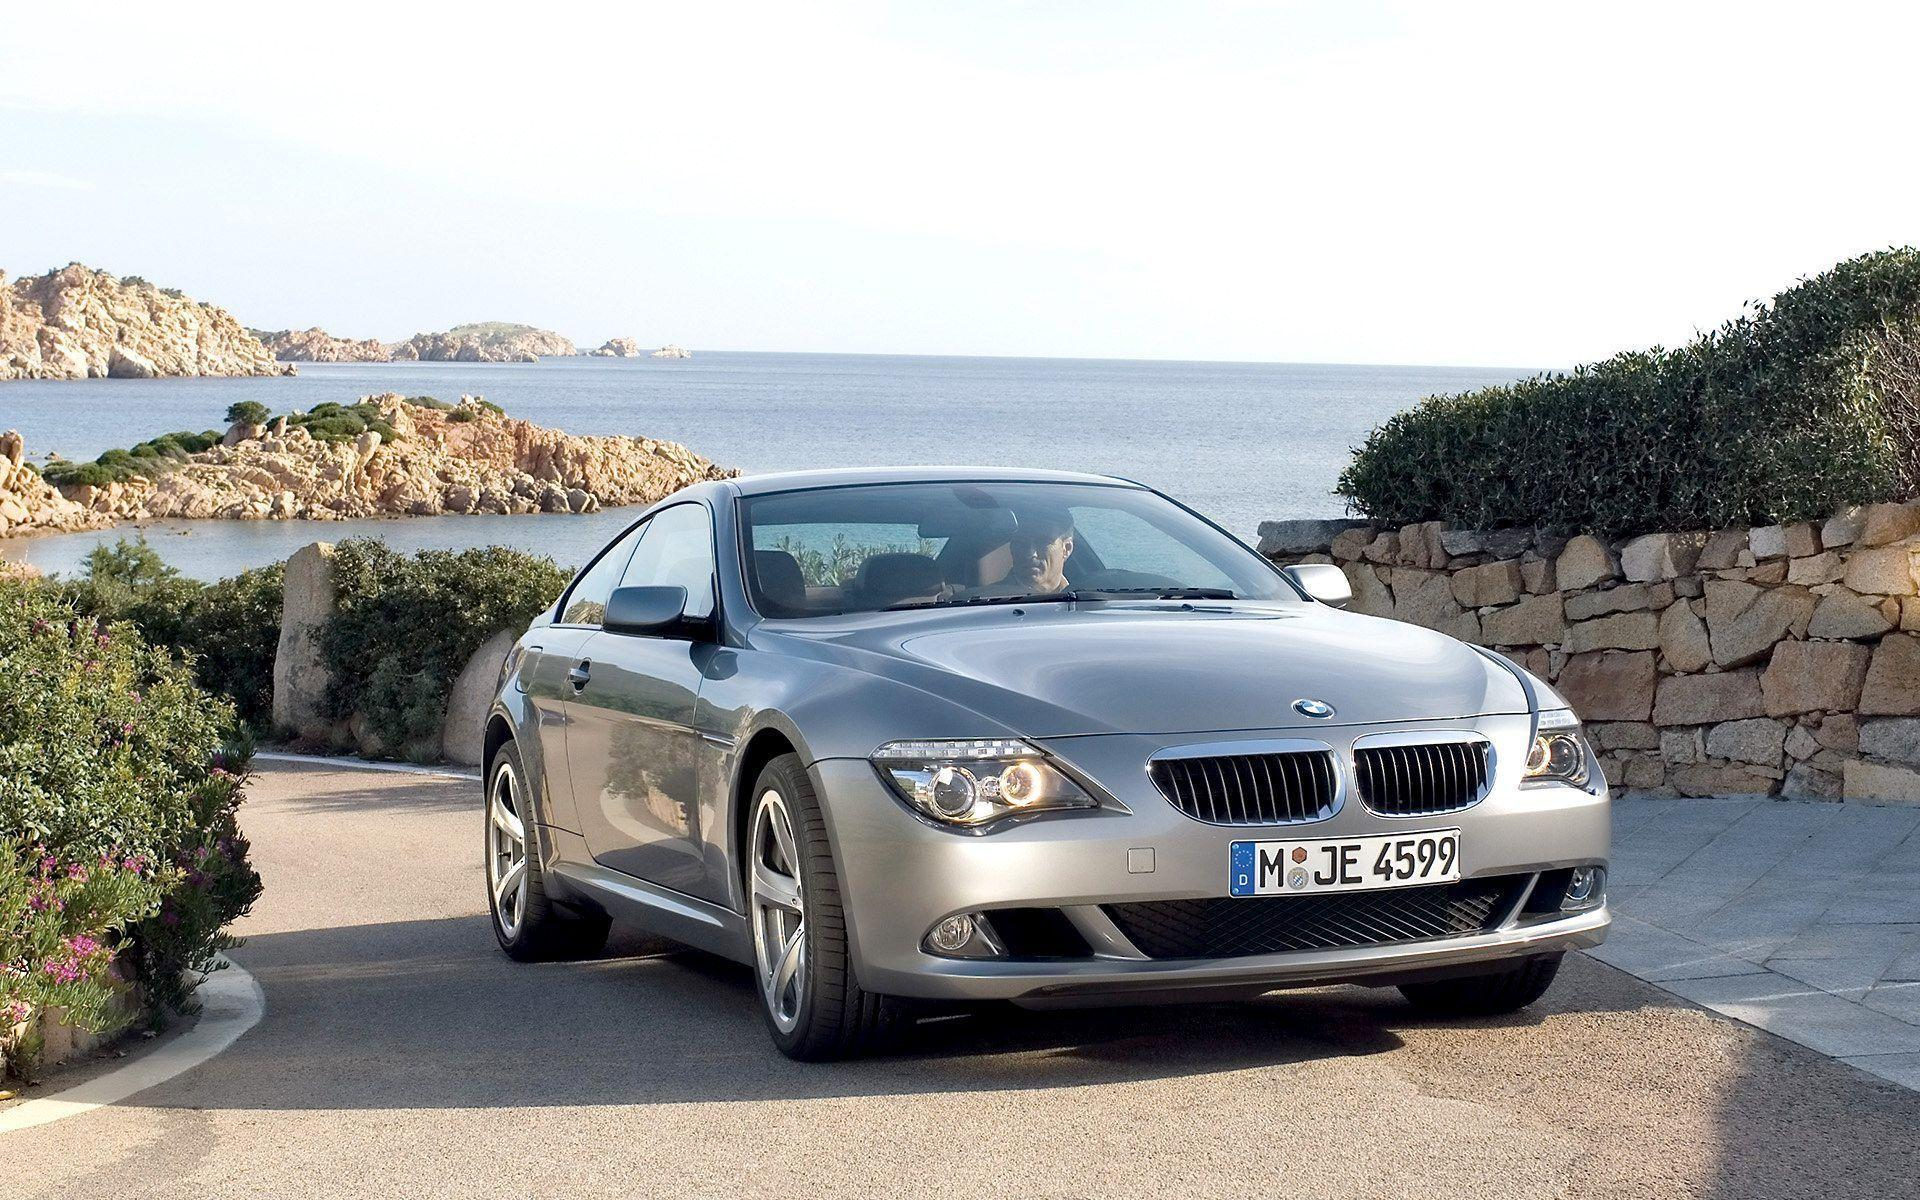 2008 BMW 6 Series Wallpaper 24 - 1920x1200